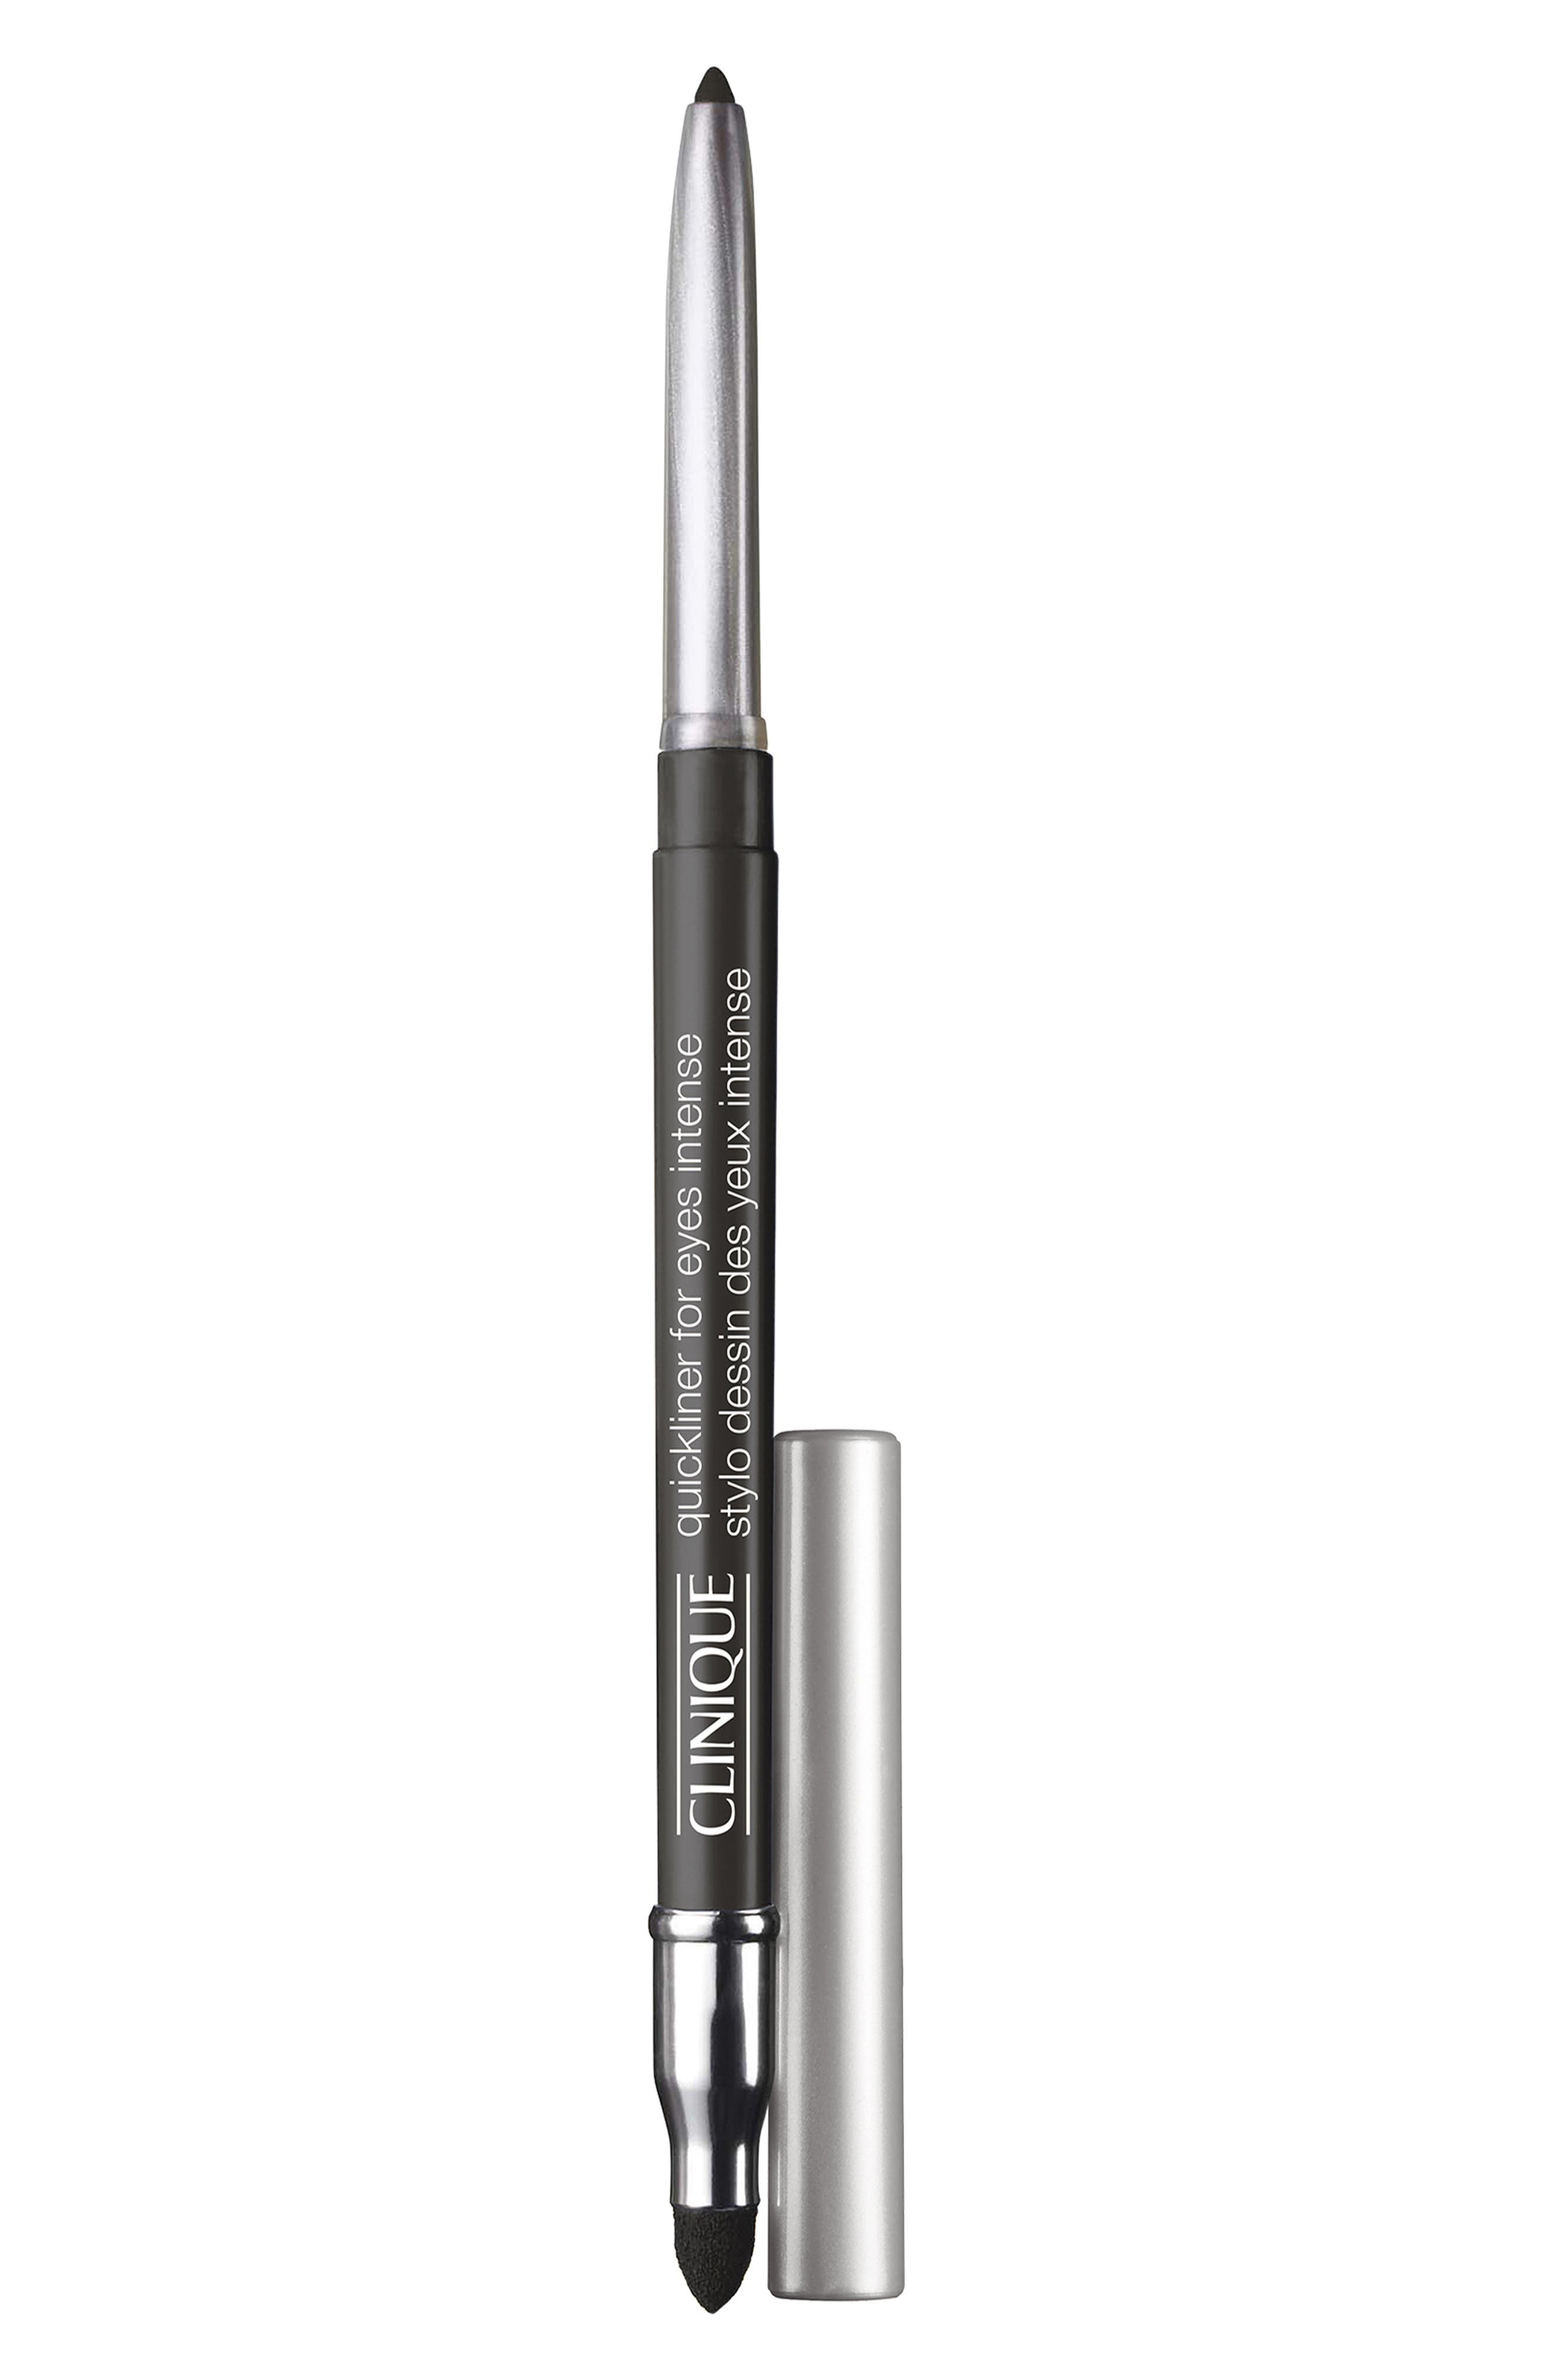 Clinique Quickliner For Eyes Intense Eyeliner Pencil - Intense Charcoal